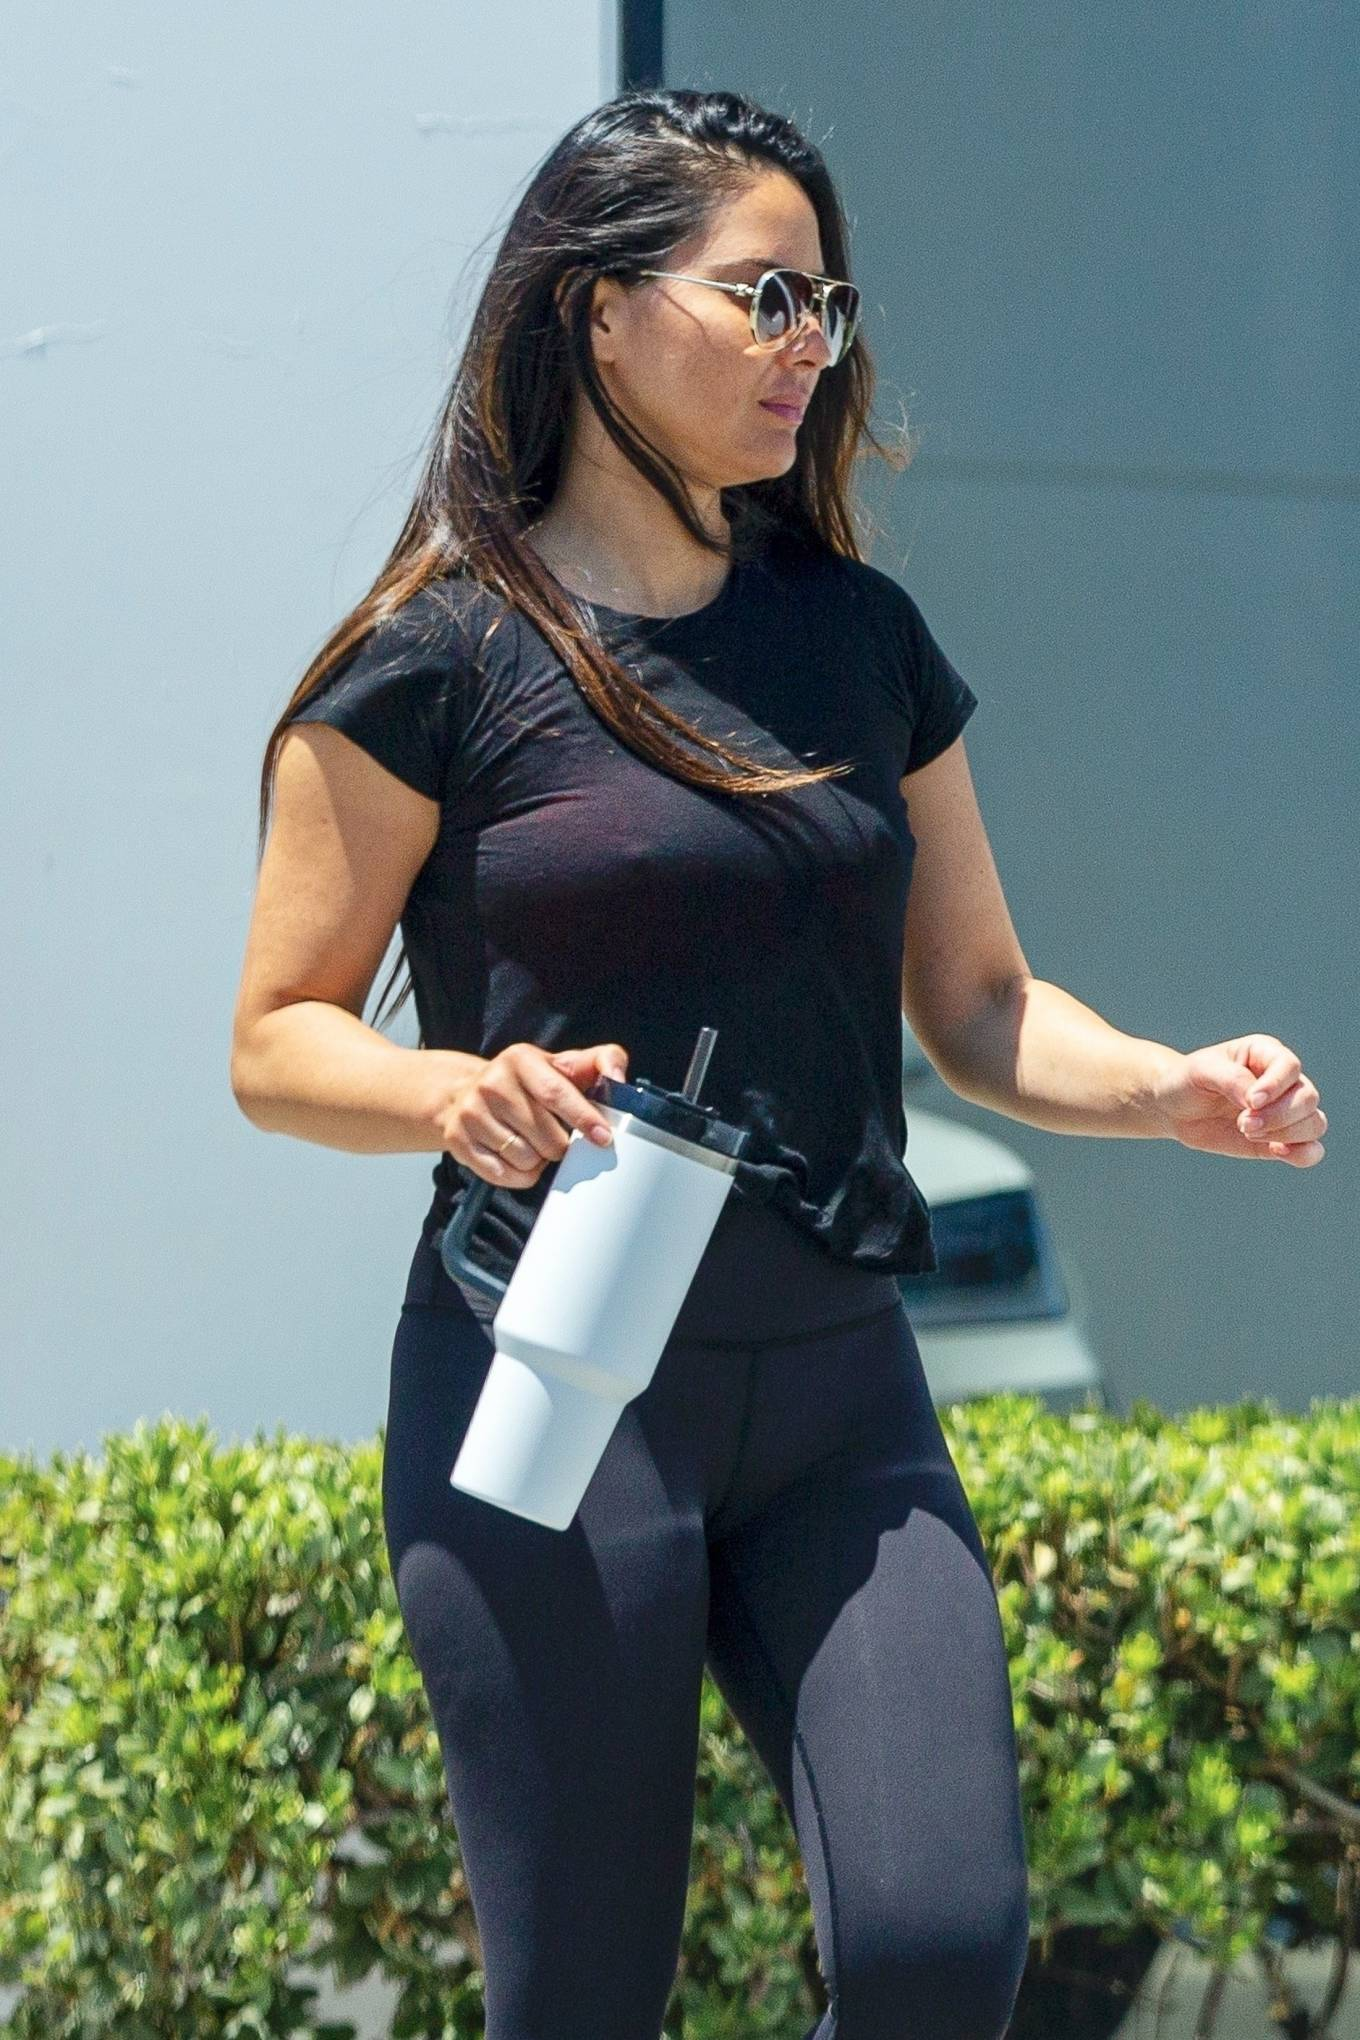 Olivia Munn - Seen while exiting the gym in Los Angeles